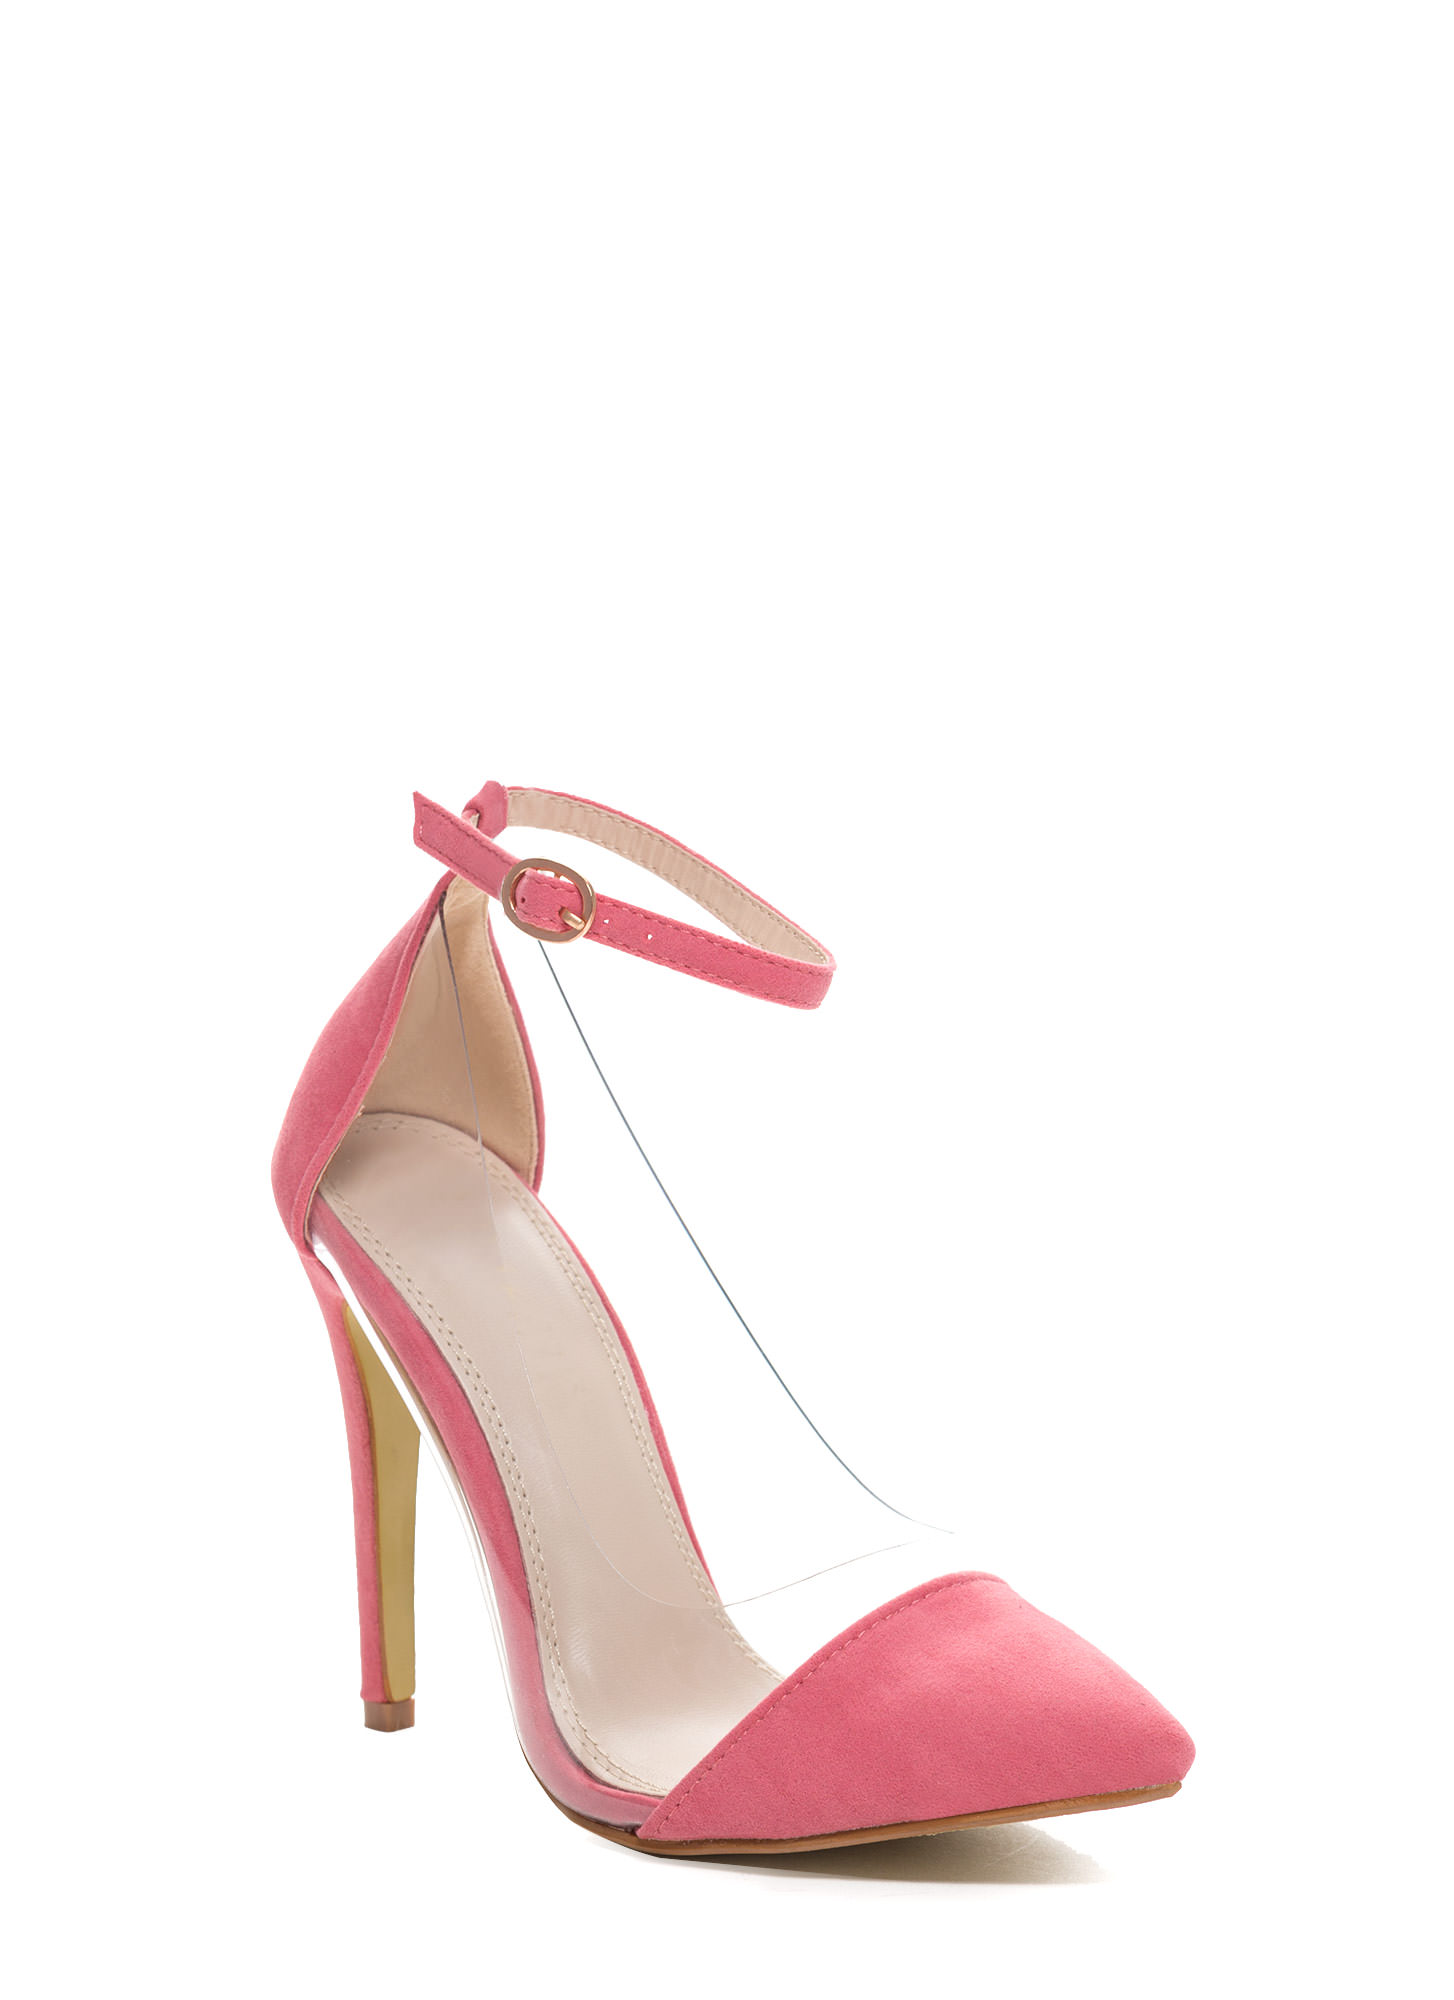 Show Some Skin Cap Toe Heels CORAL